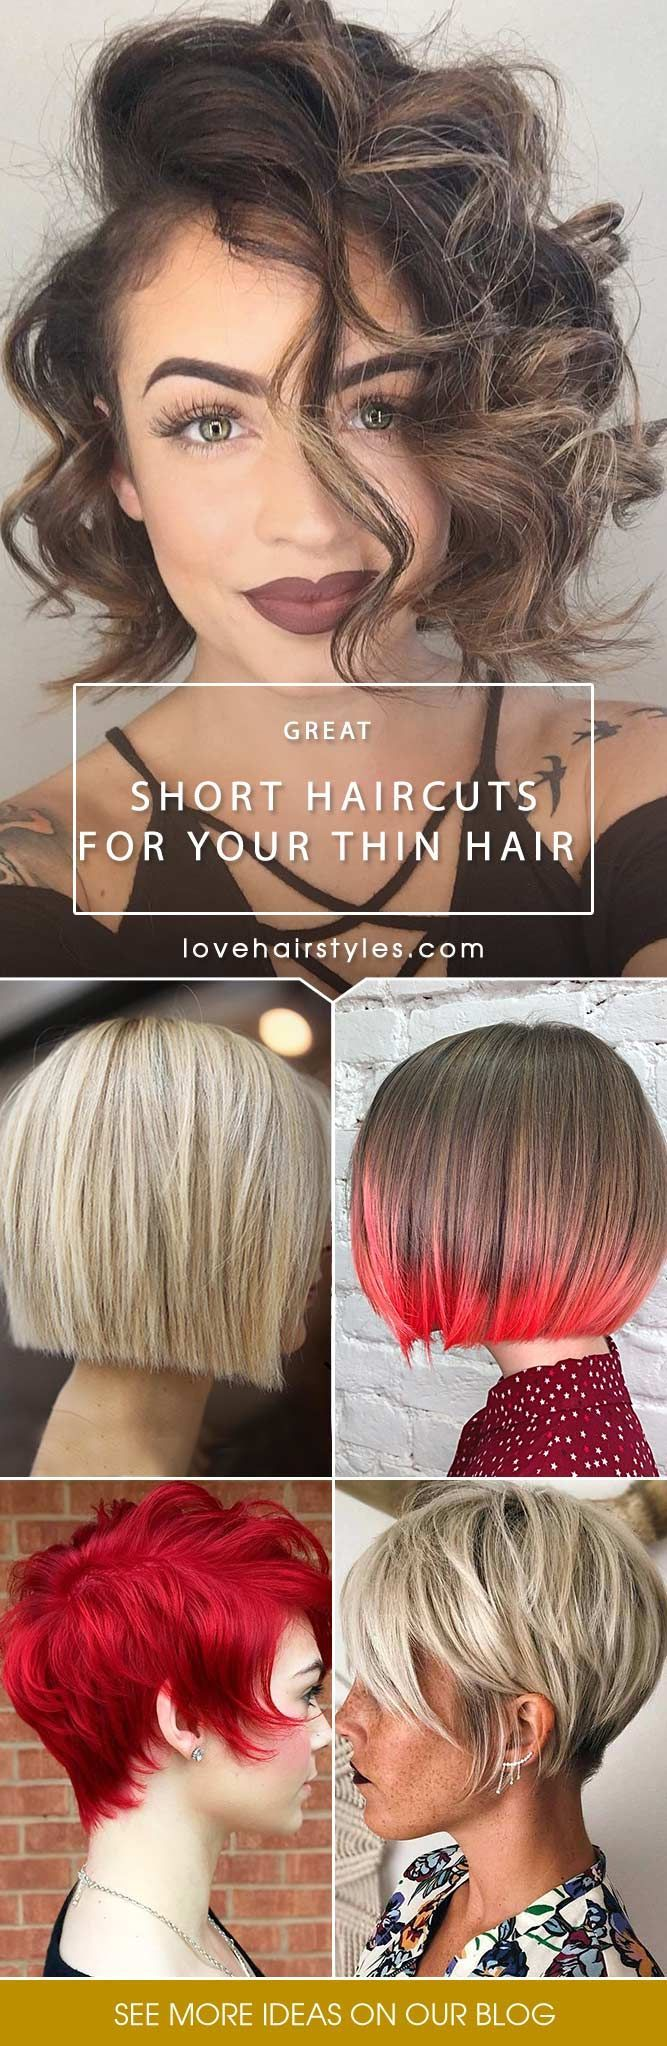 Thin hair is the greatest fear of many women. But not all of them know that this is not a real problem. We have gathered some ideas that may be useful for those who think that their hair is a nightmare. #hairtype #thinhair #shorthaircuts